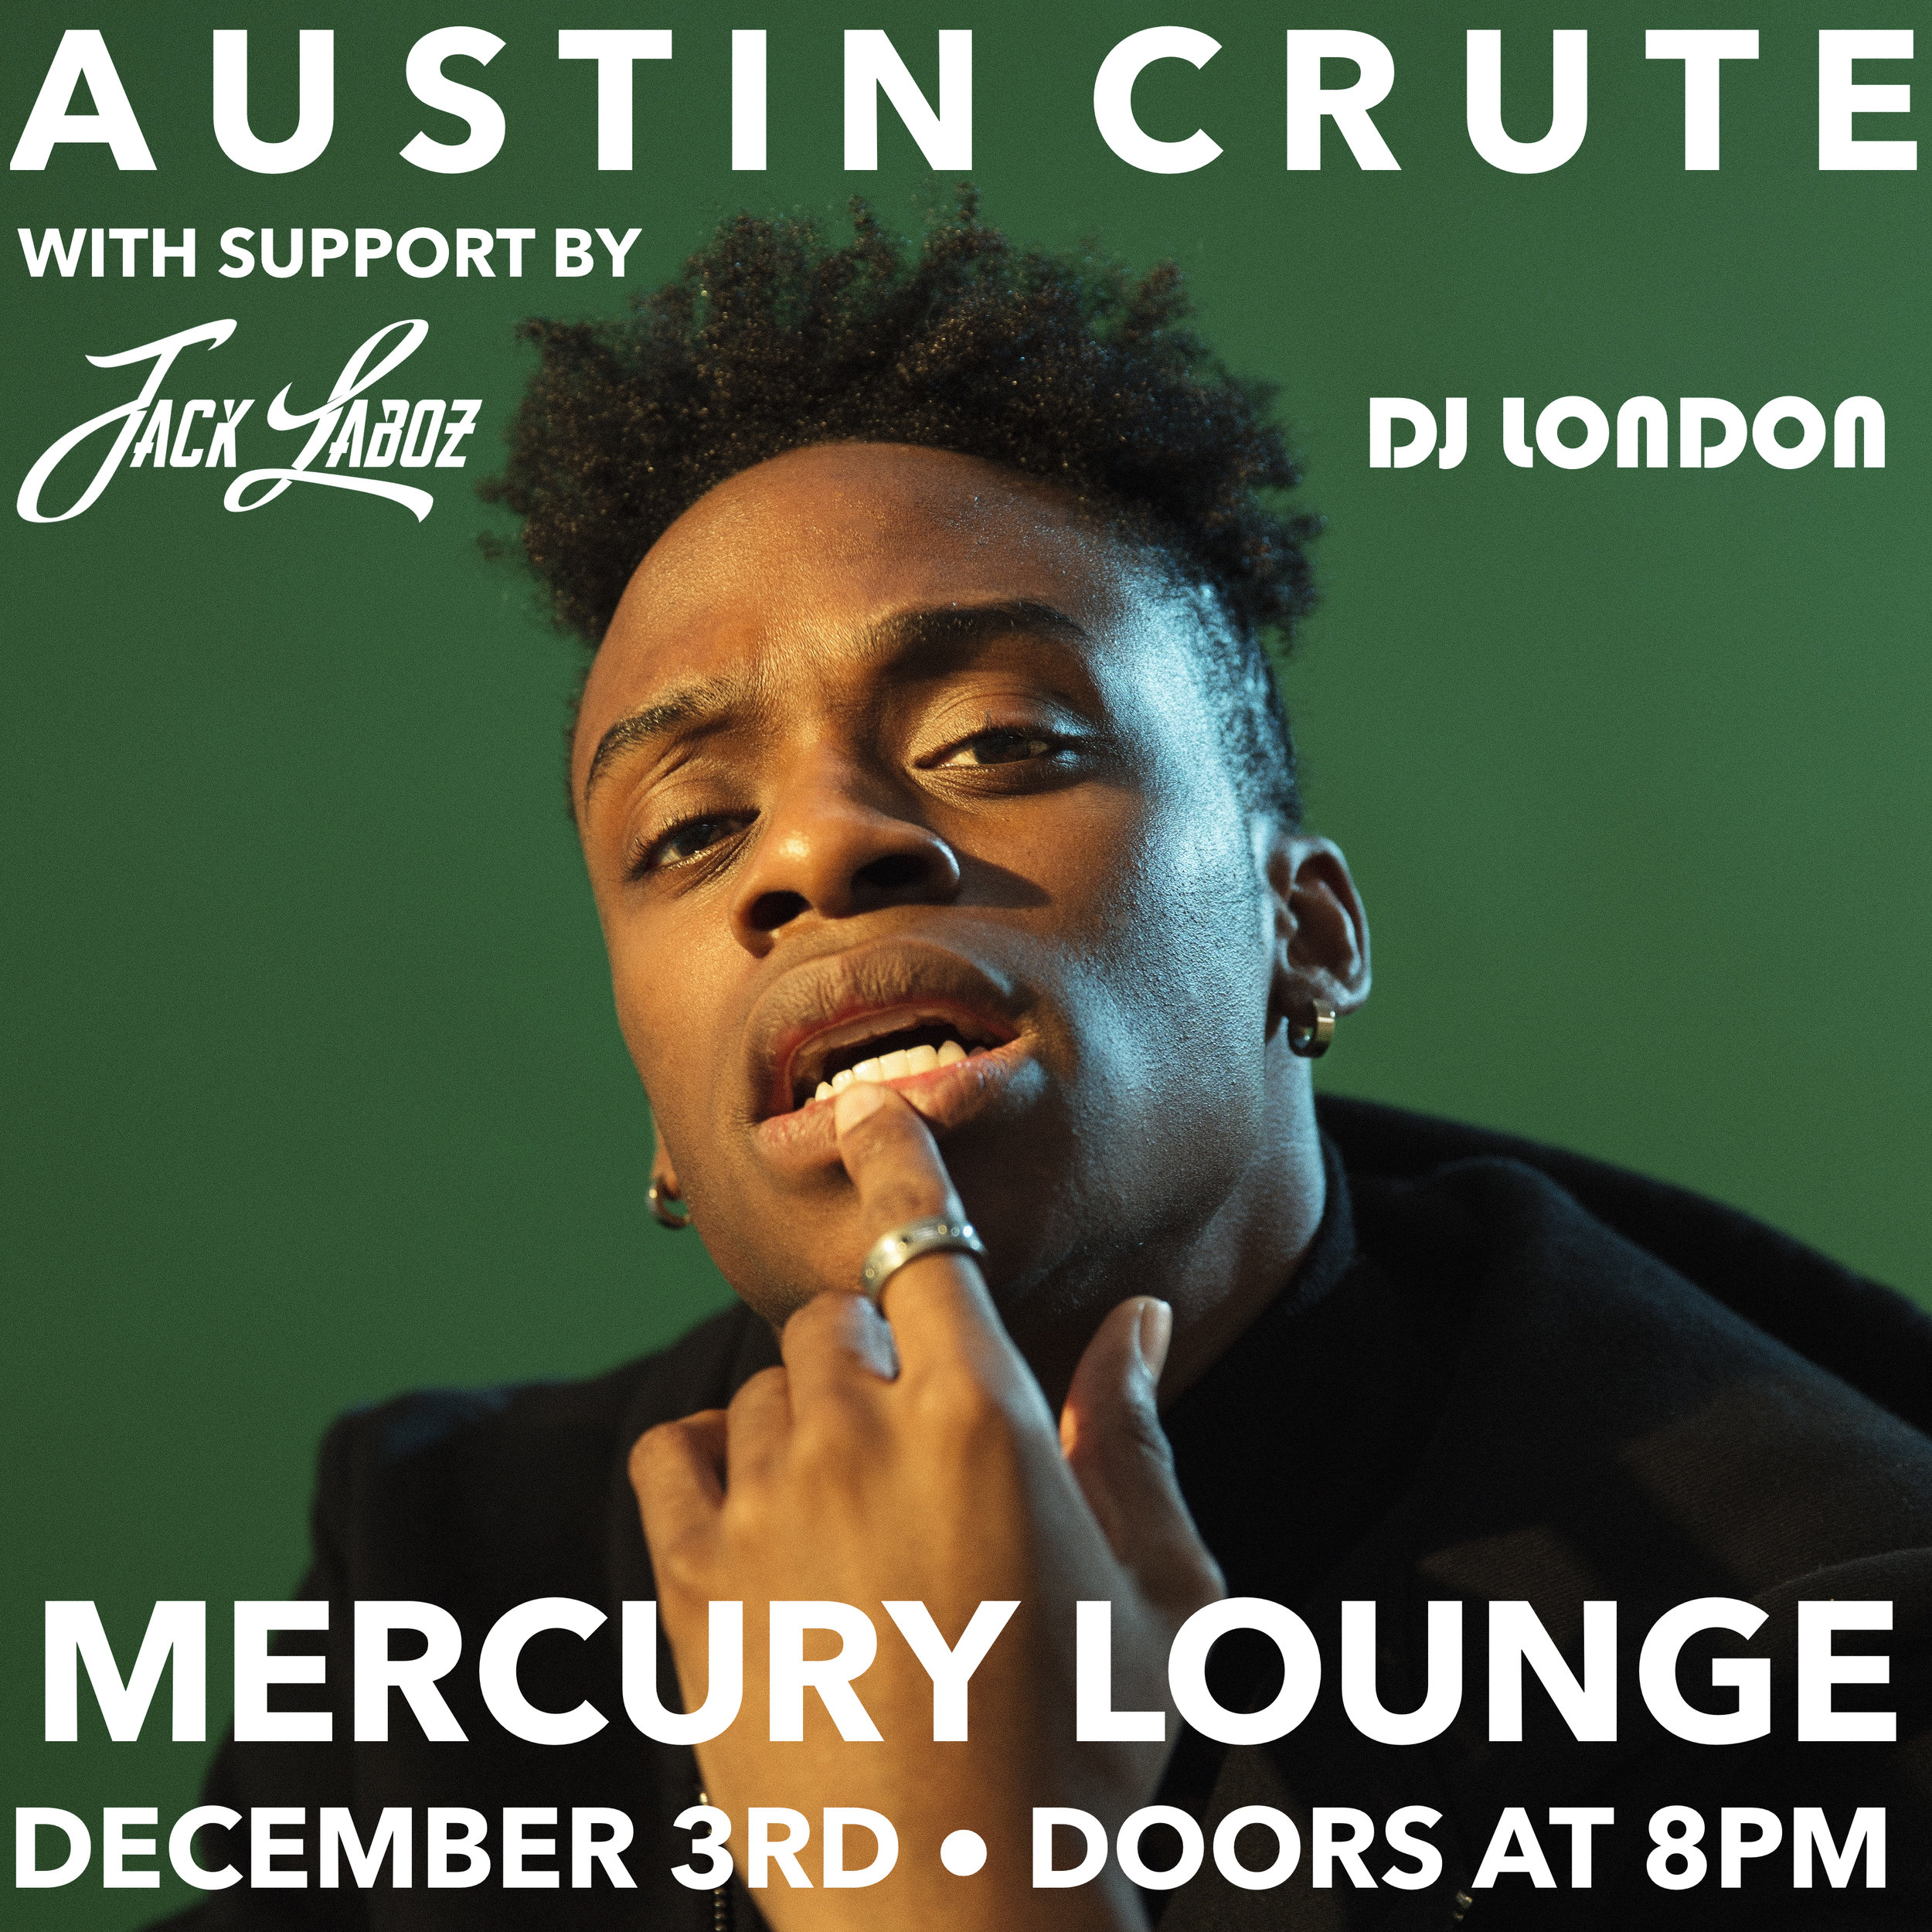 MERCURY LOUNGE - NEW YORK, NYDECEMBER 3RD 2017